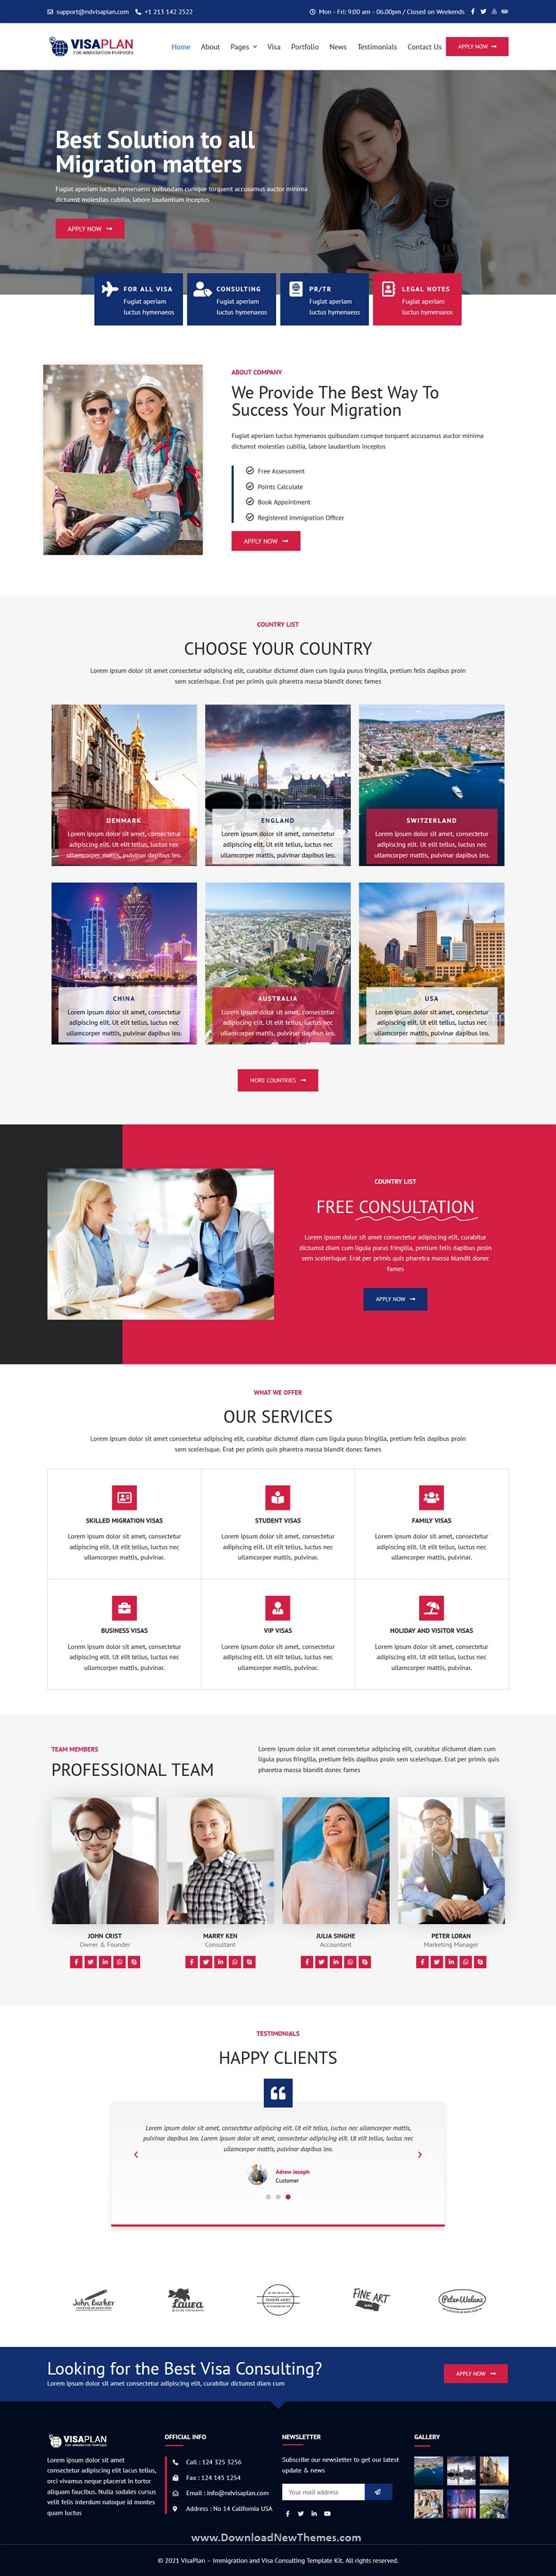 Immigration and Visa Consulting Agency Website Theme